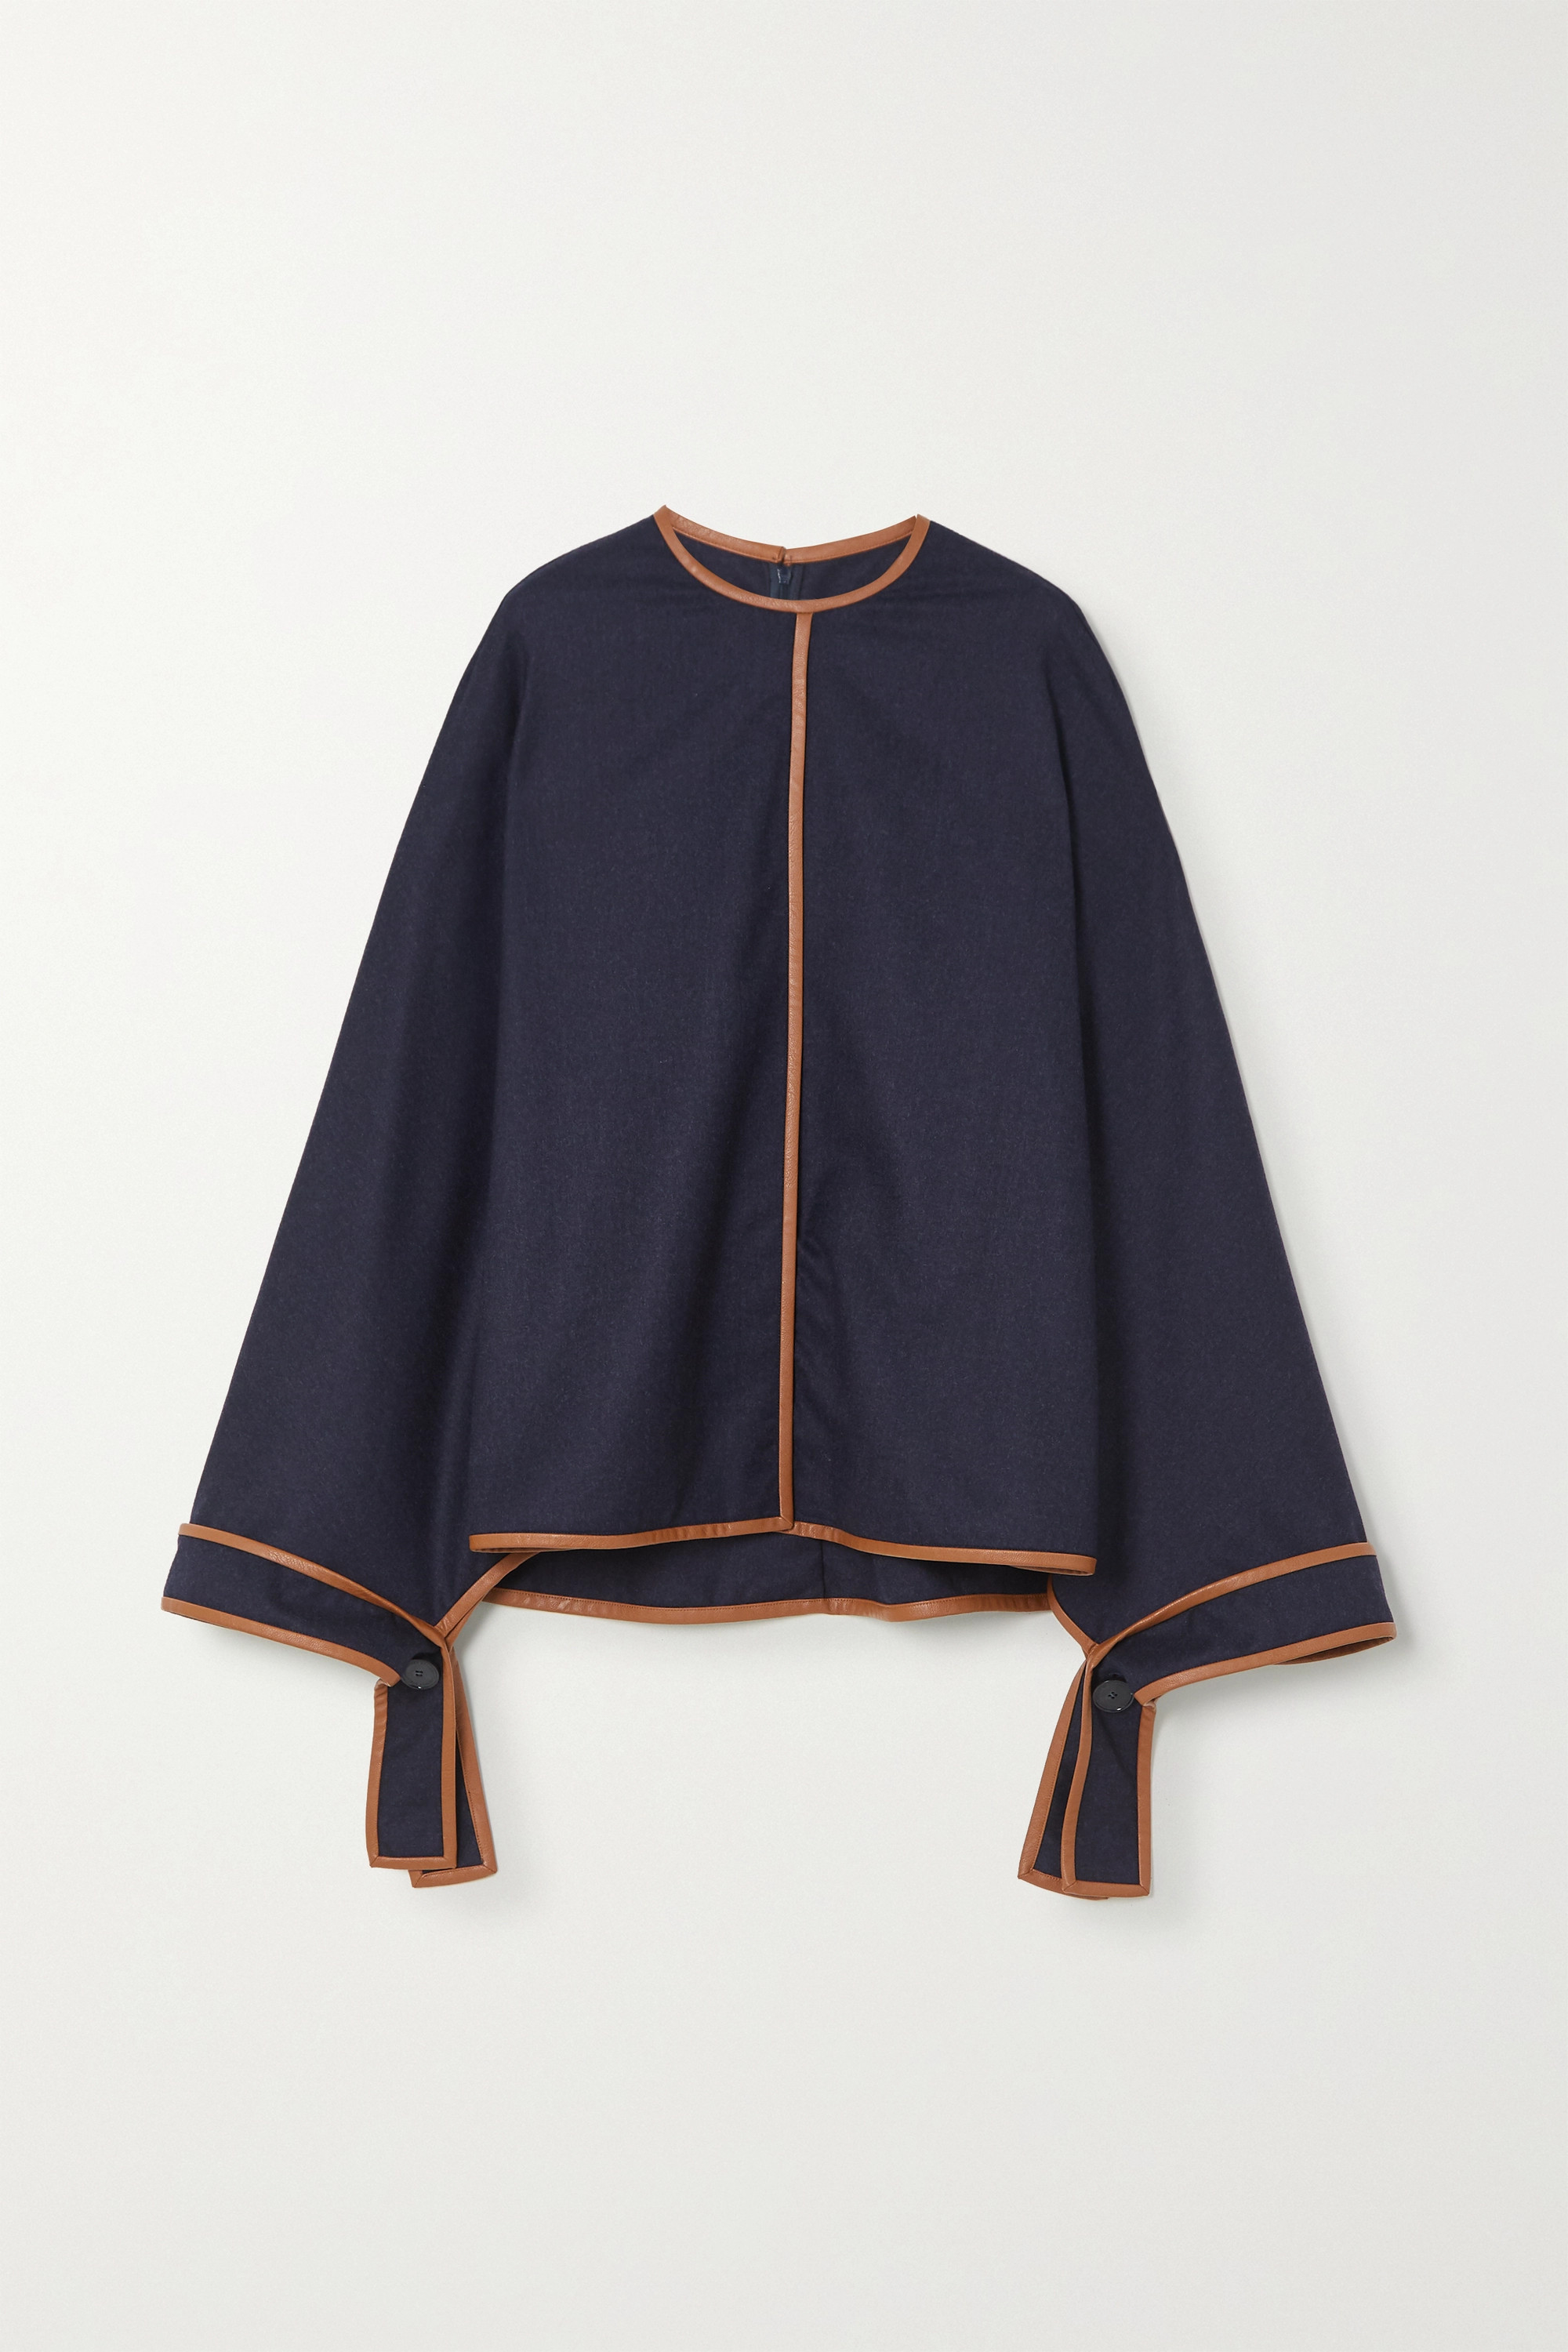 STELLA MCCARTNEY Faux leather-trimmed wool blouse